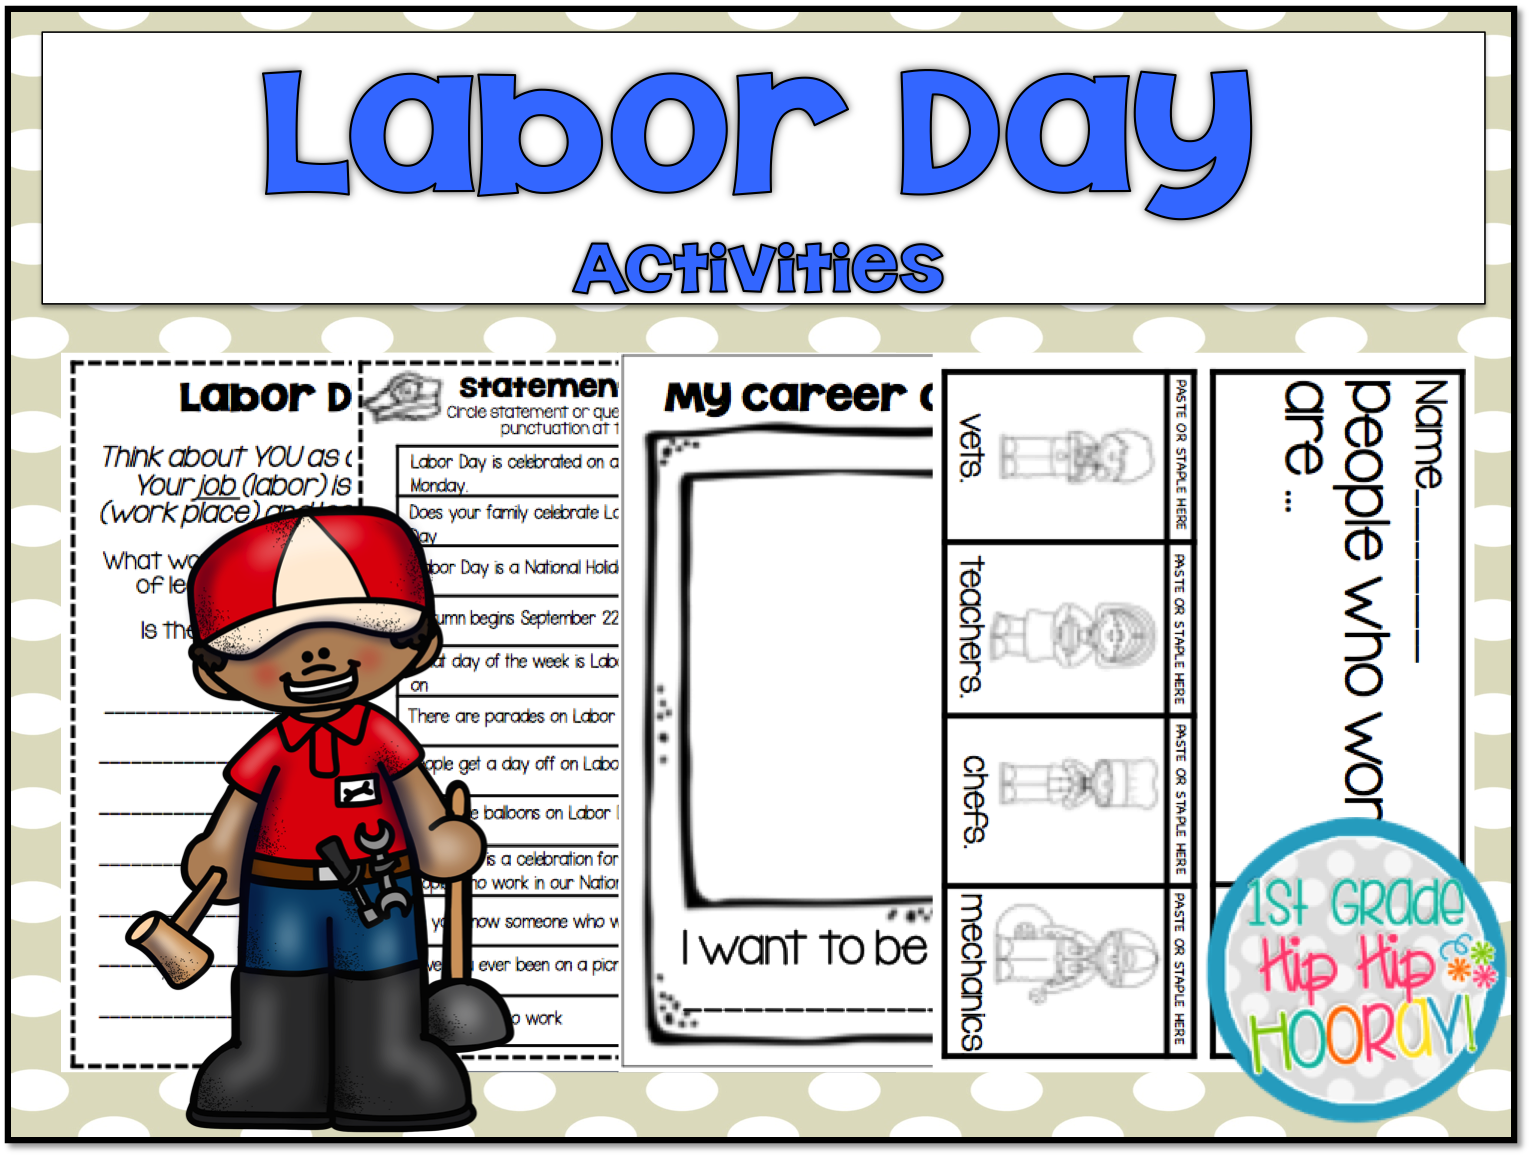 1st Grade Hip Hip Hooray Labor Day